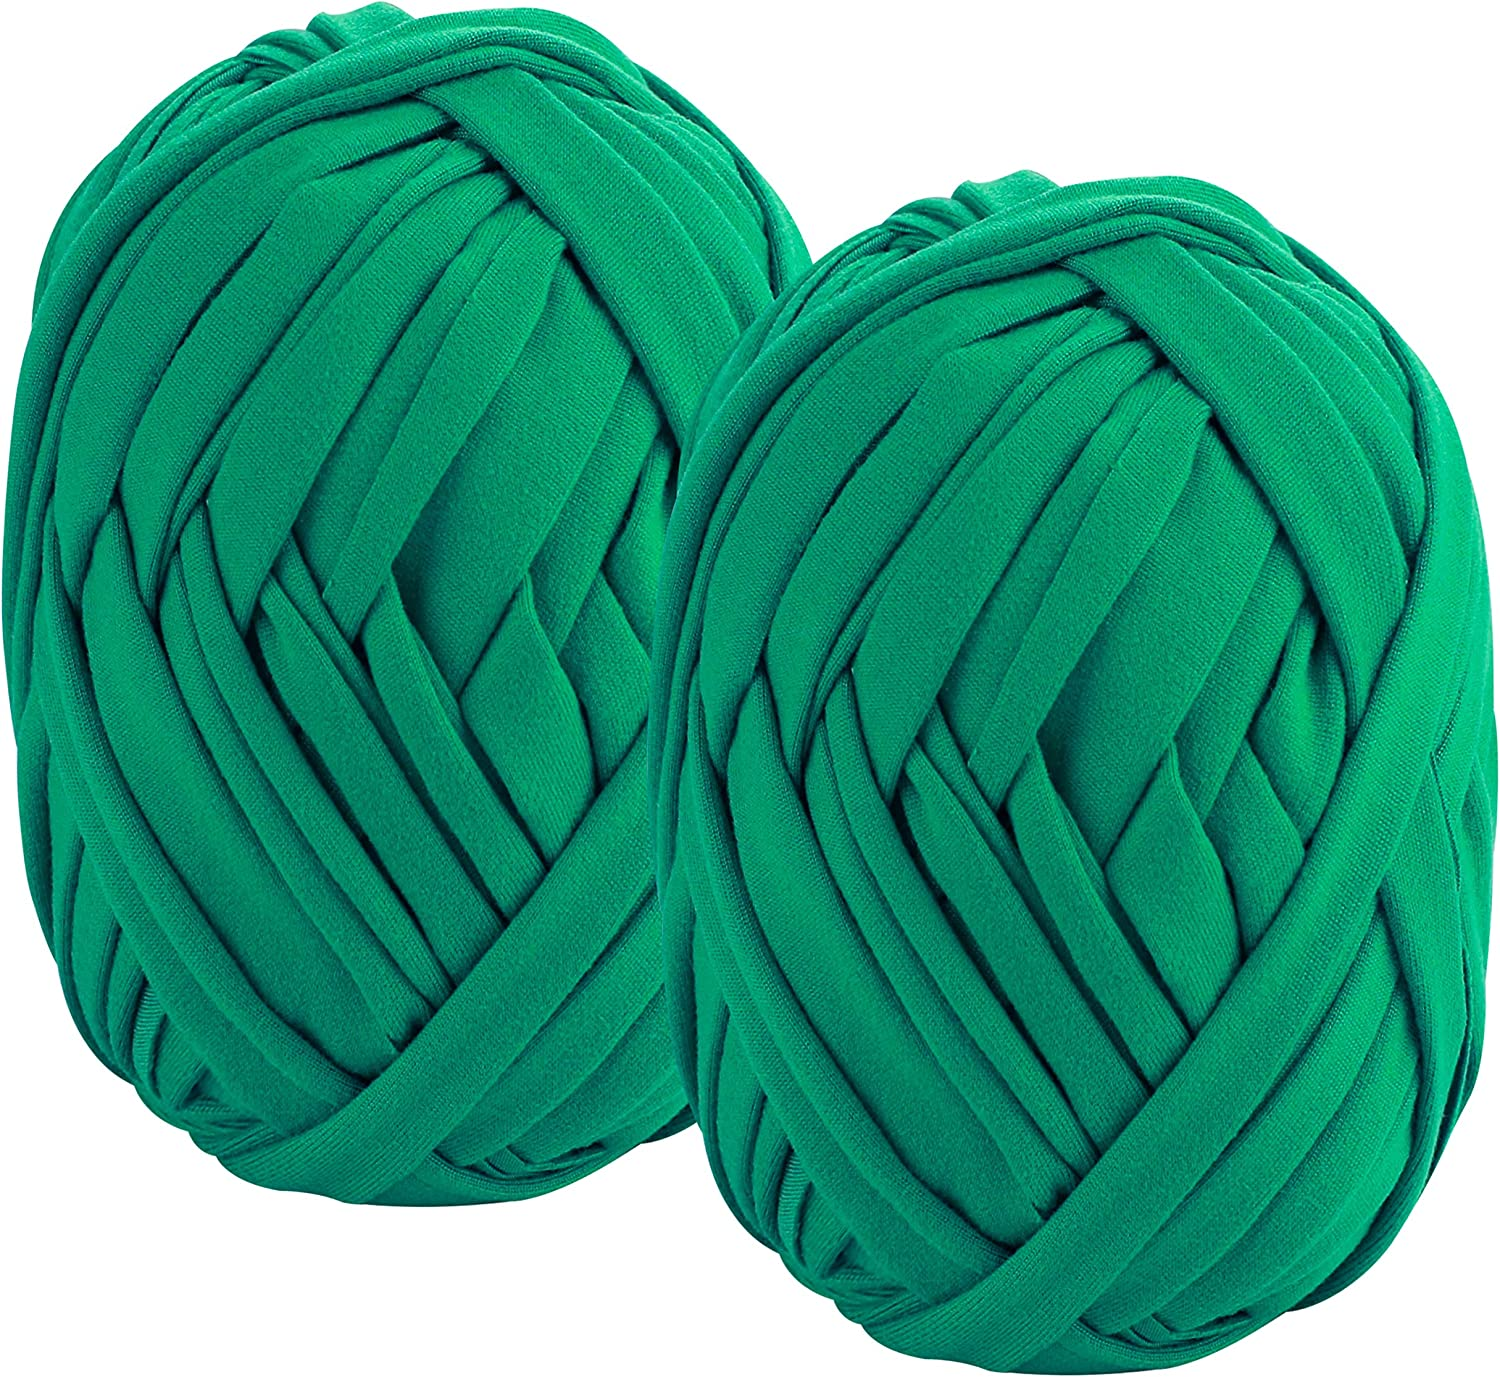 QXUJI 2 Pack Garden String, Green Garden Twine, Soft Ties for Smart Plants, Tree, Flowers, Stretchy Plant Supports for All Gardeners, Craft String (35M/Roll, 115FT)